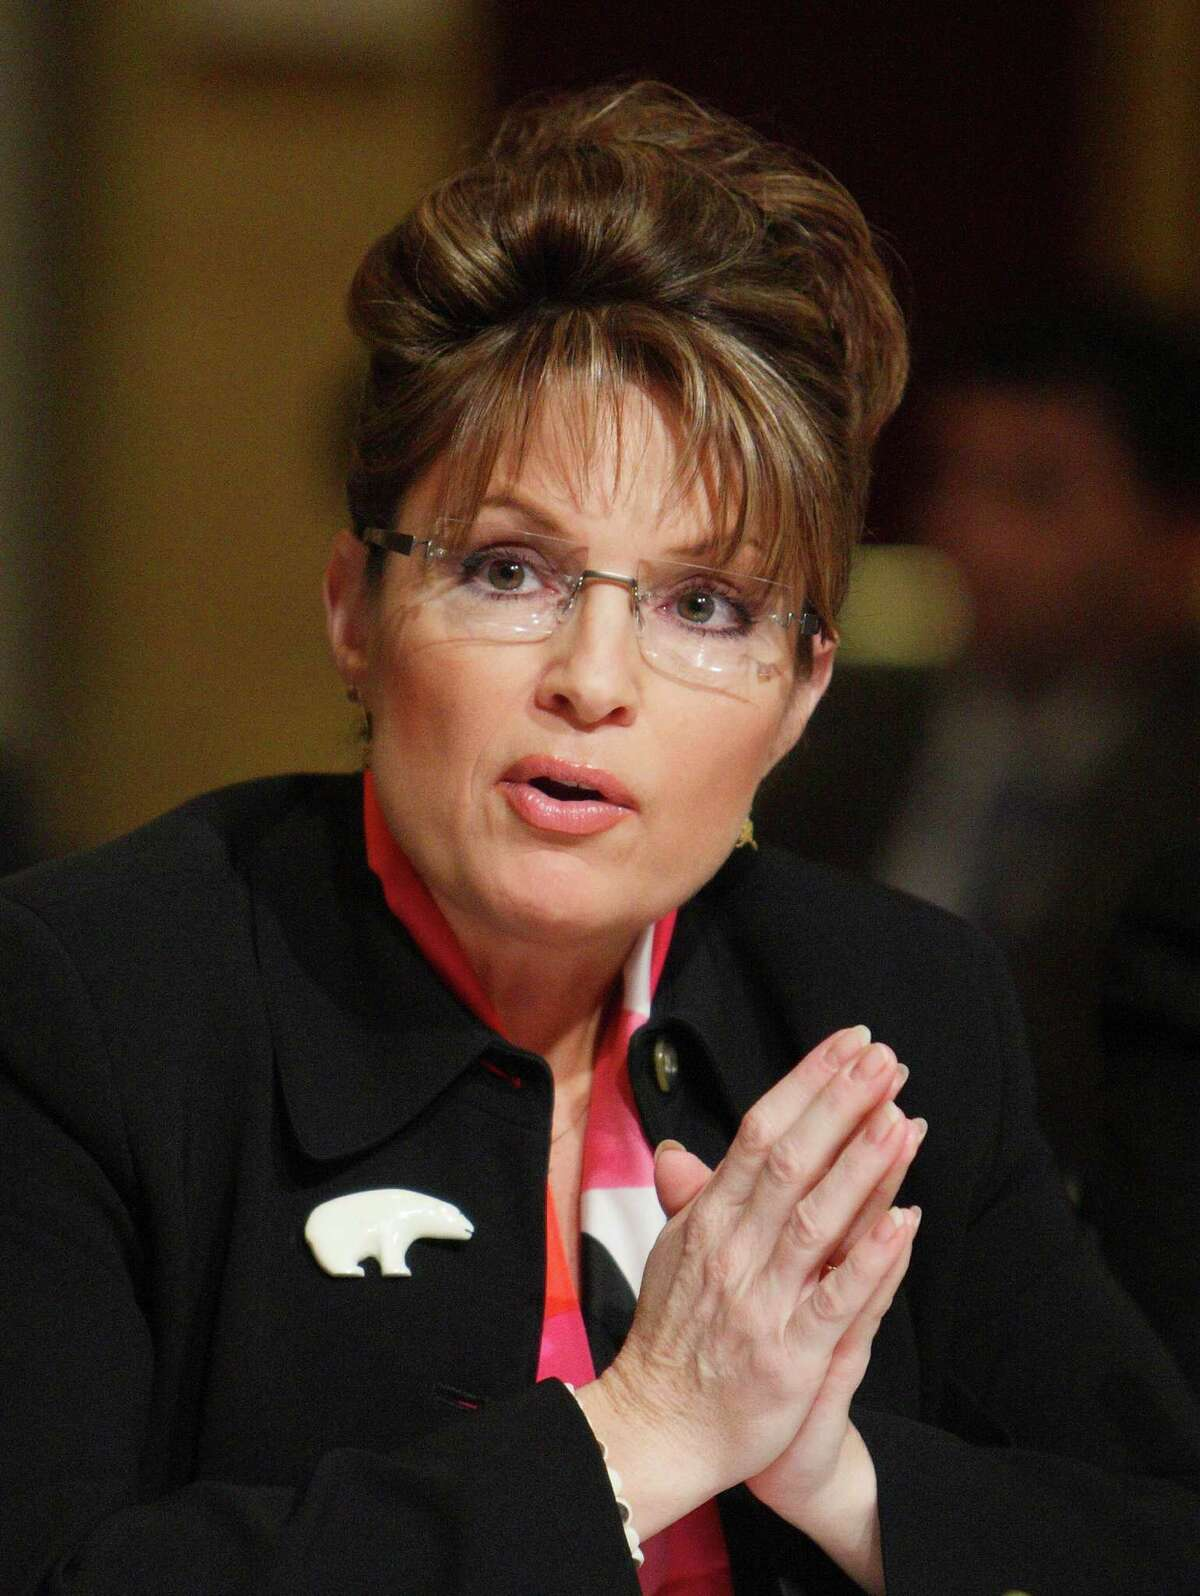 Alaska Sarah Palin is Googled more in Alaska than other states. She is followed by Jon Voight and Alton Brown.